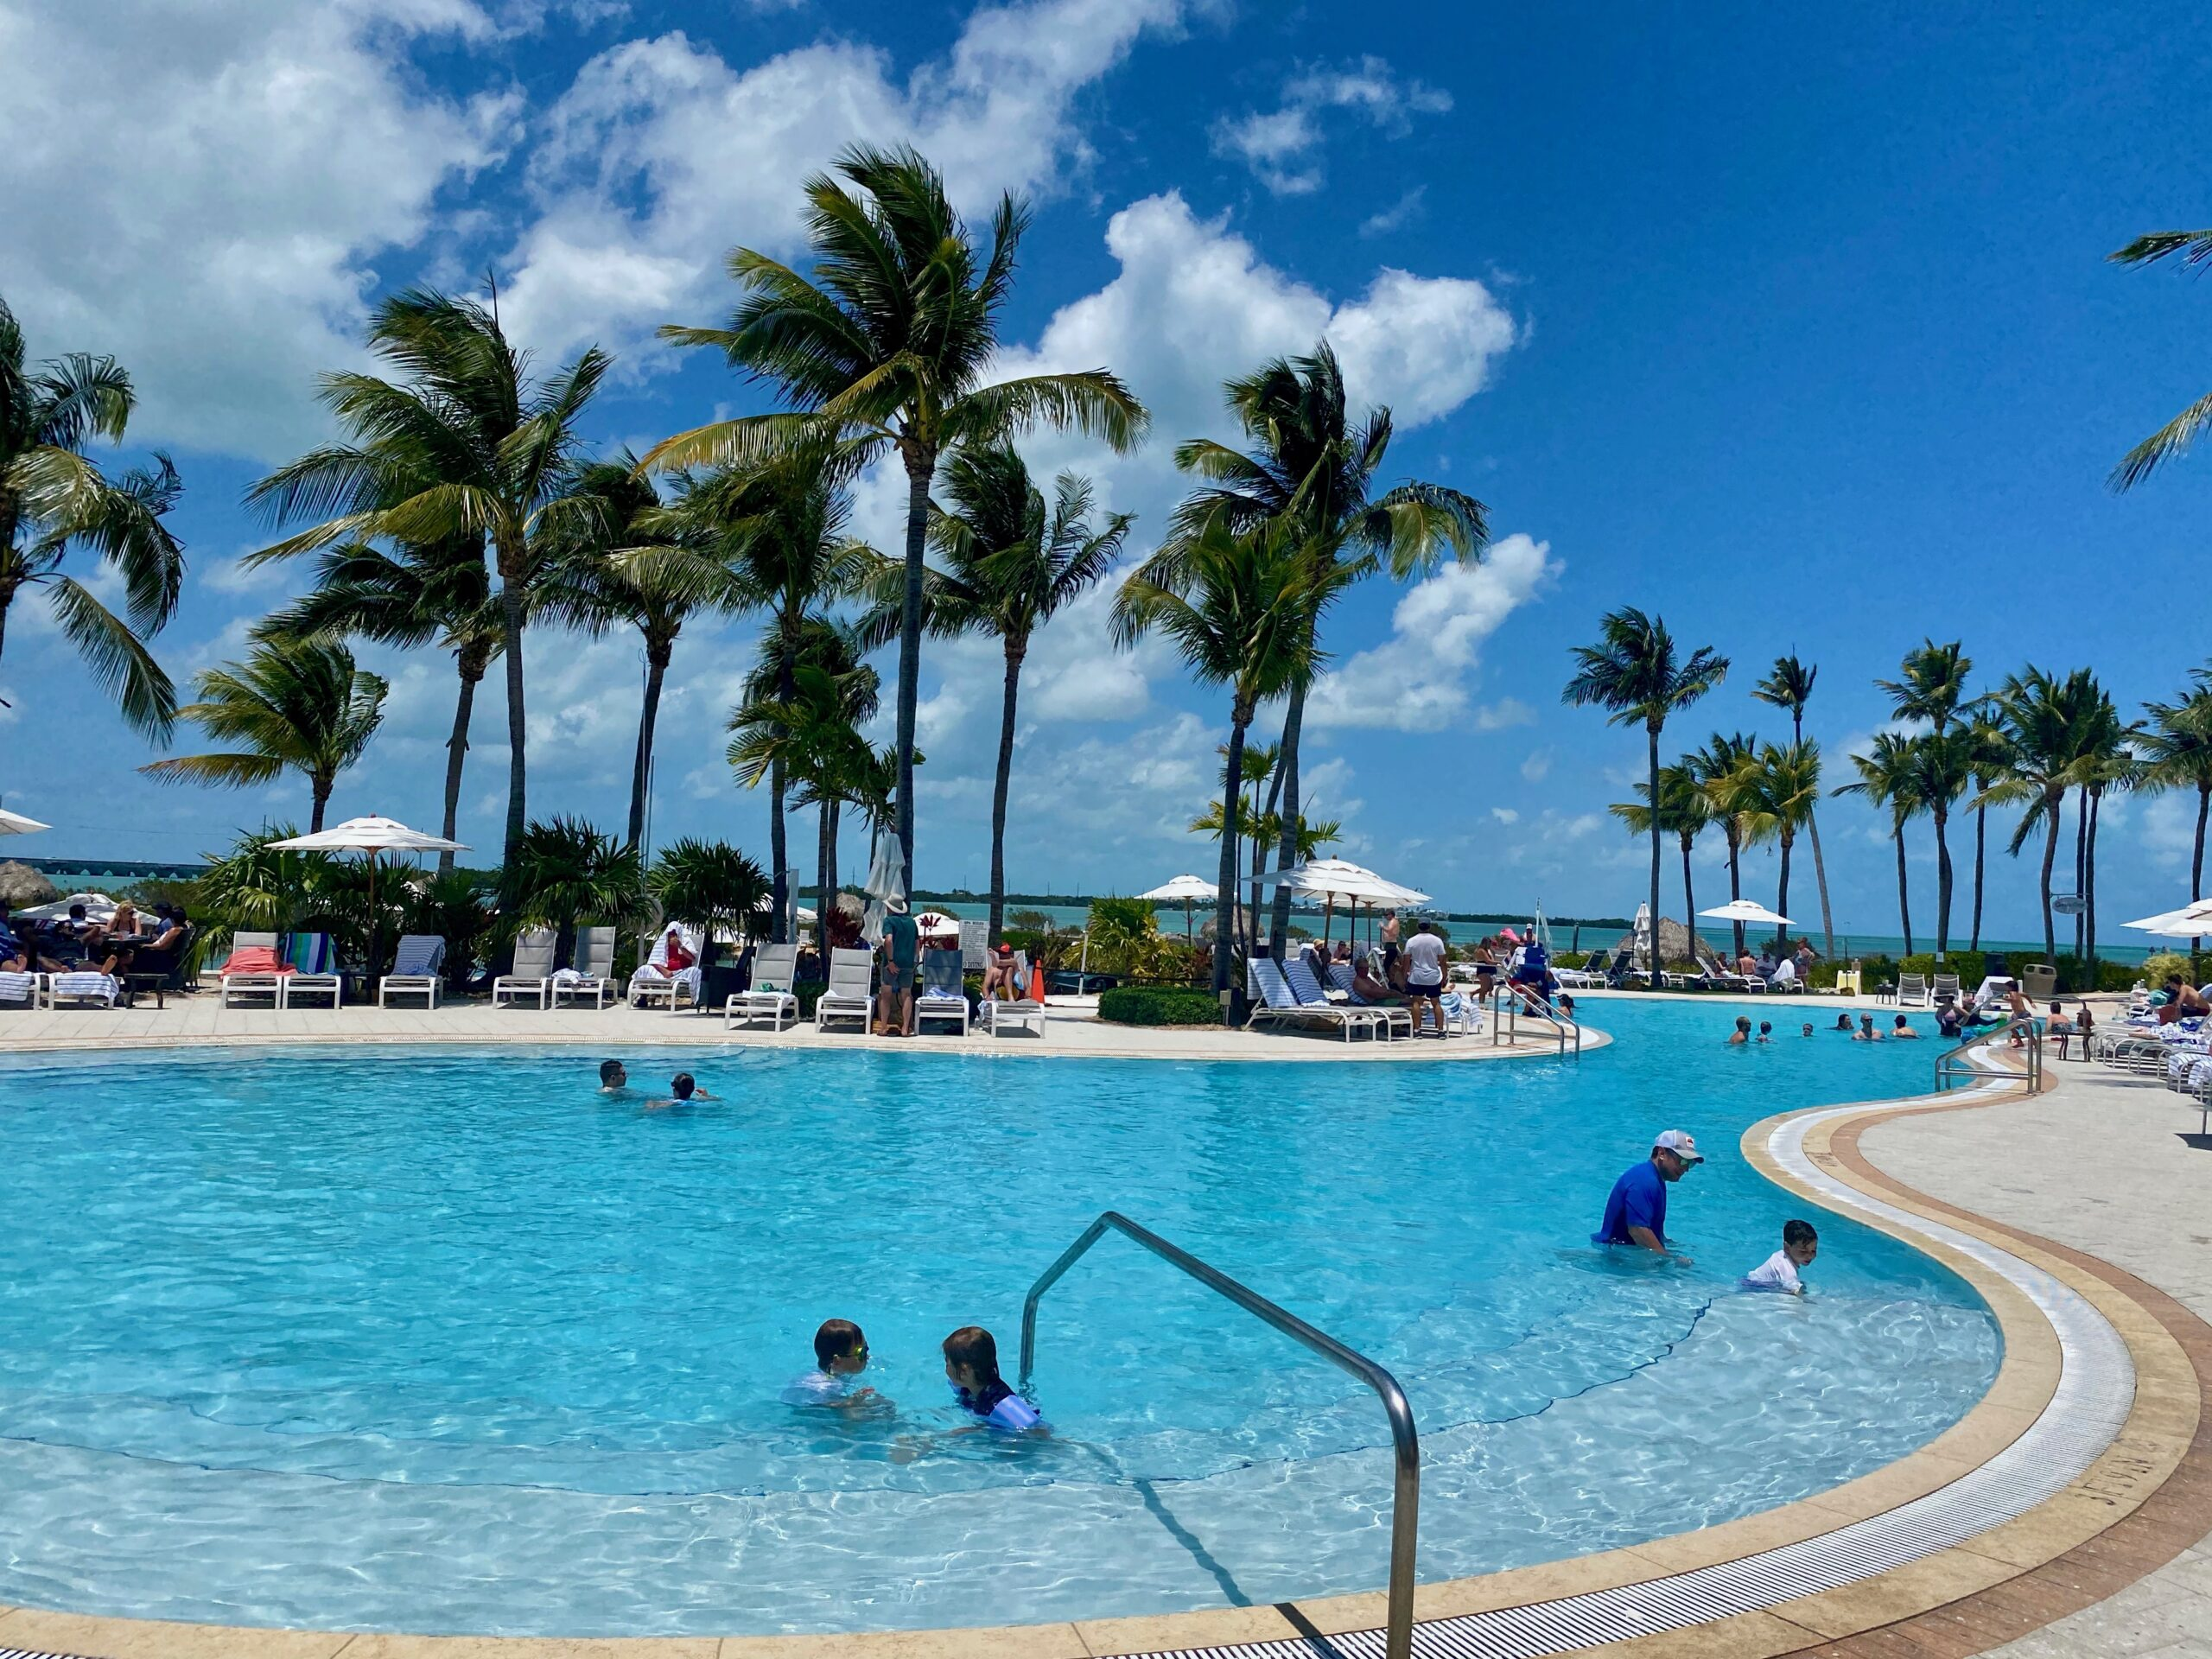 Playing in the pool at Hawks Cay Resort.